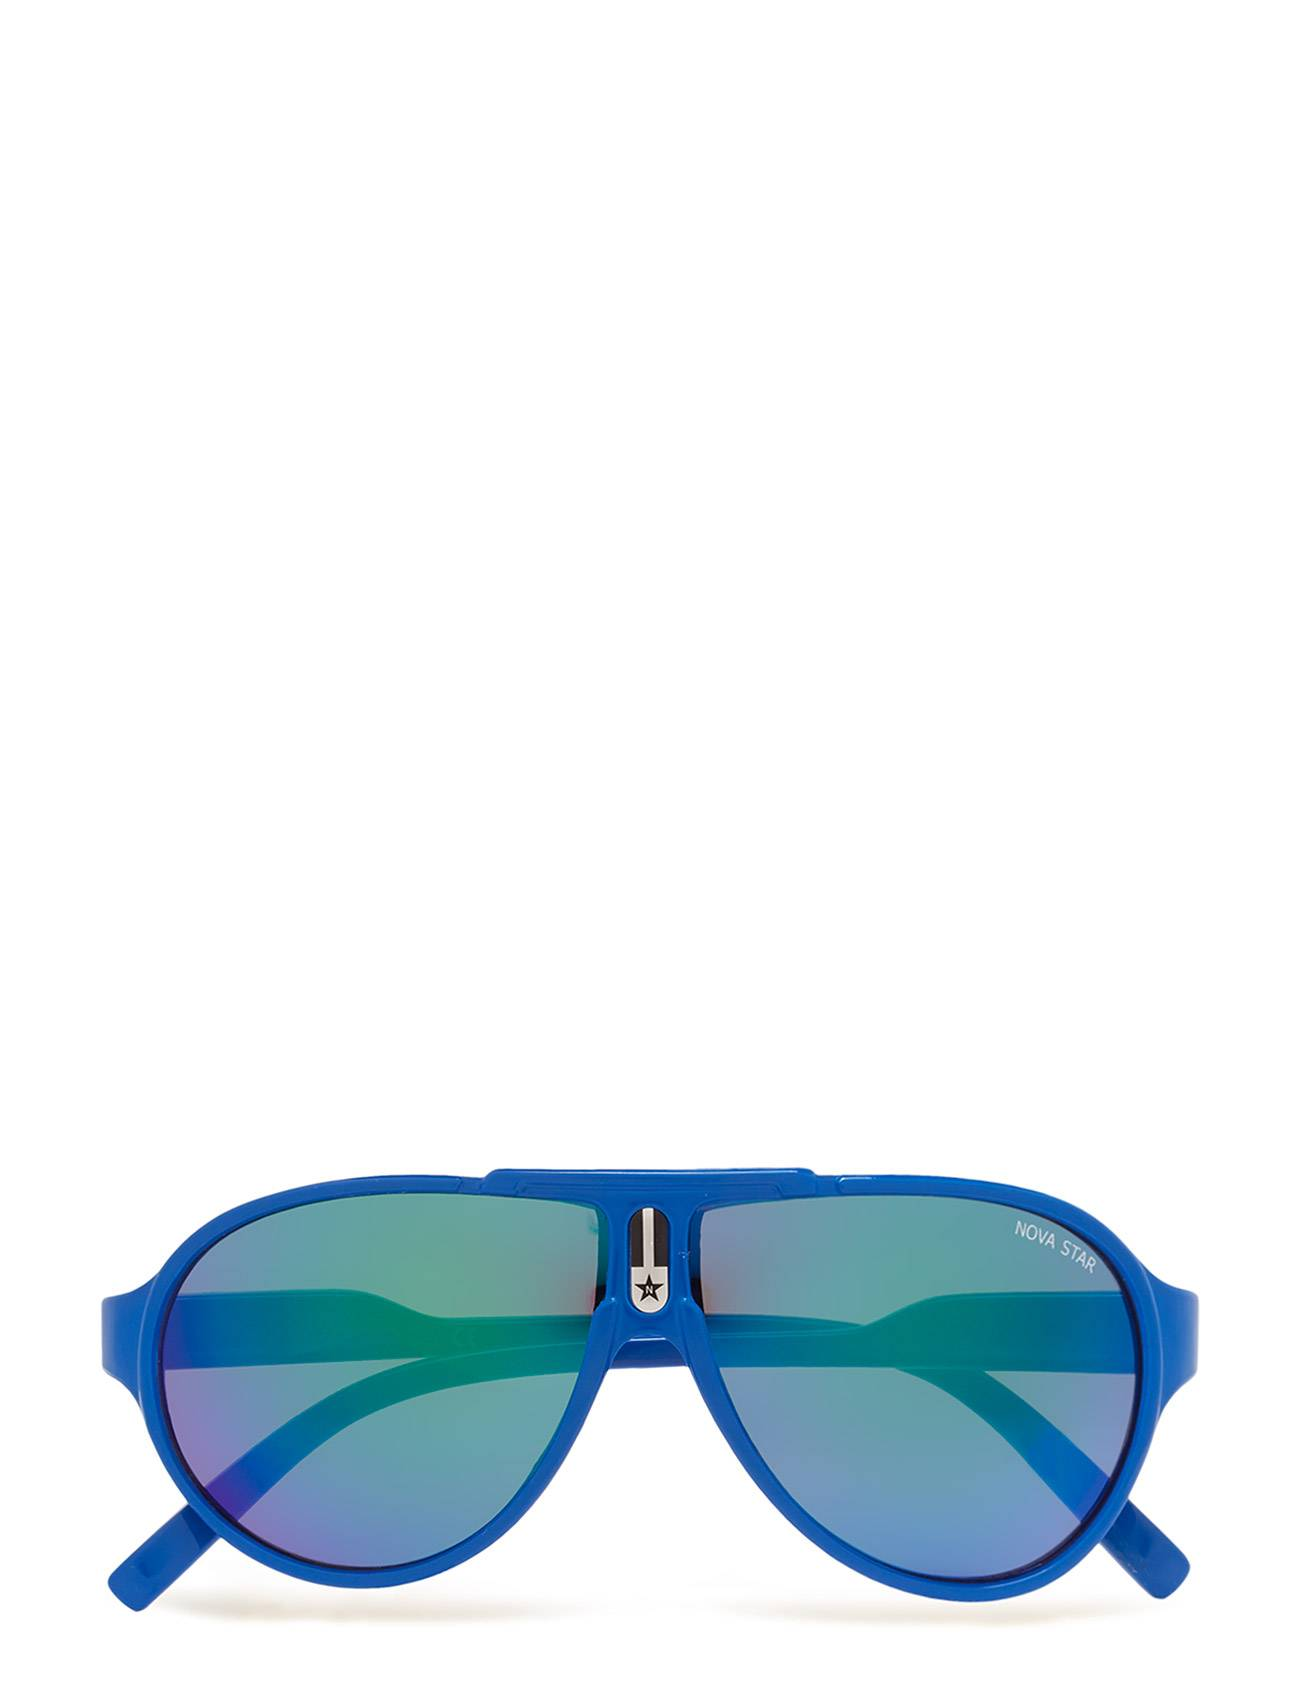 NOVA STAR Copilver Revounglasses